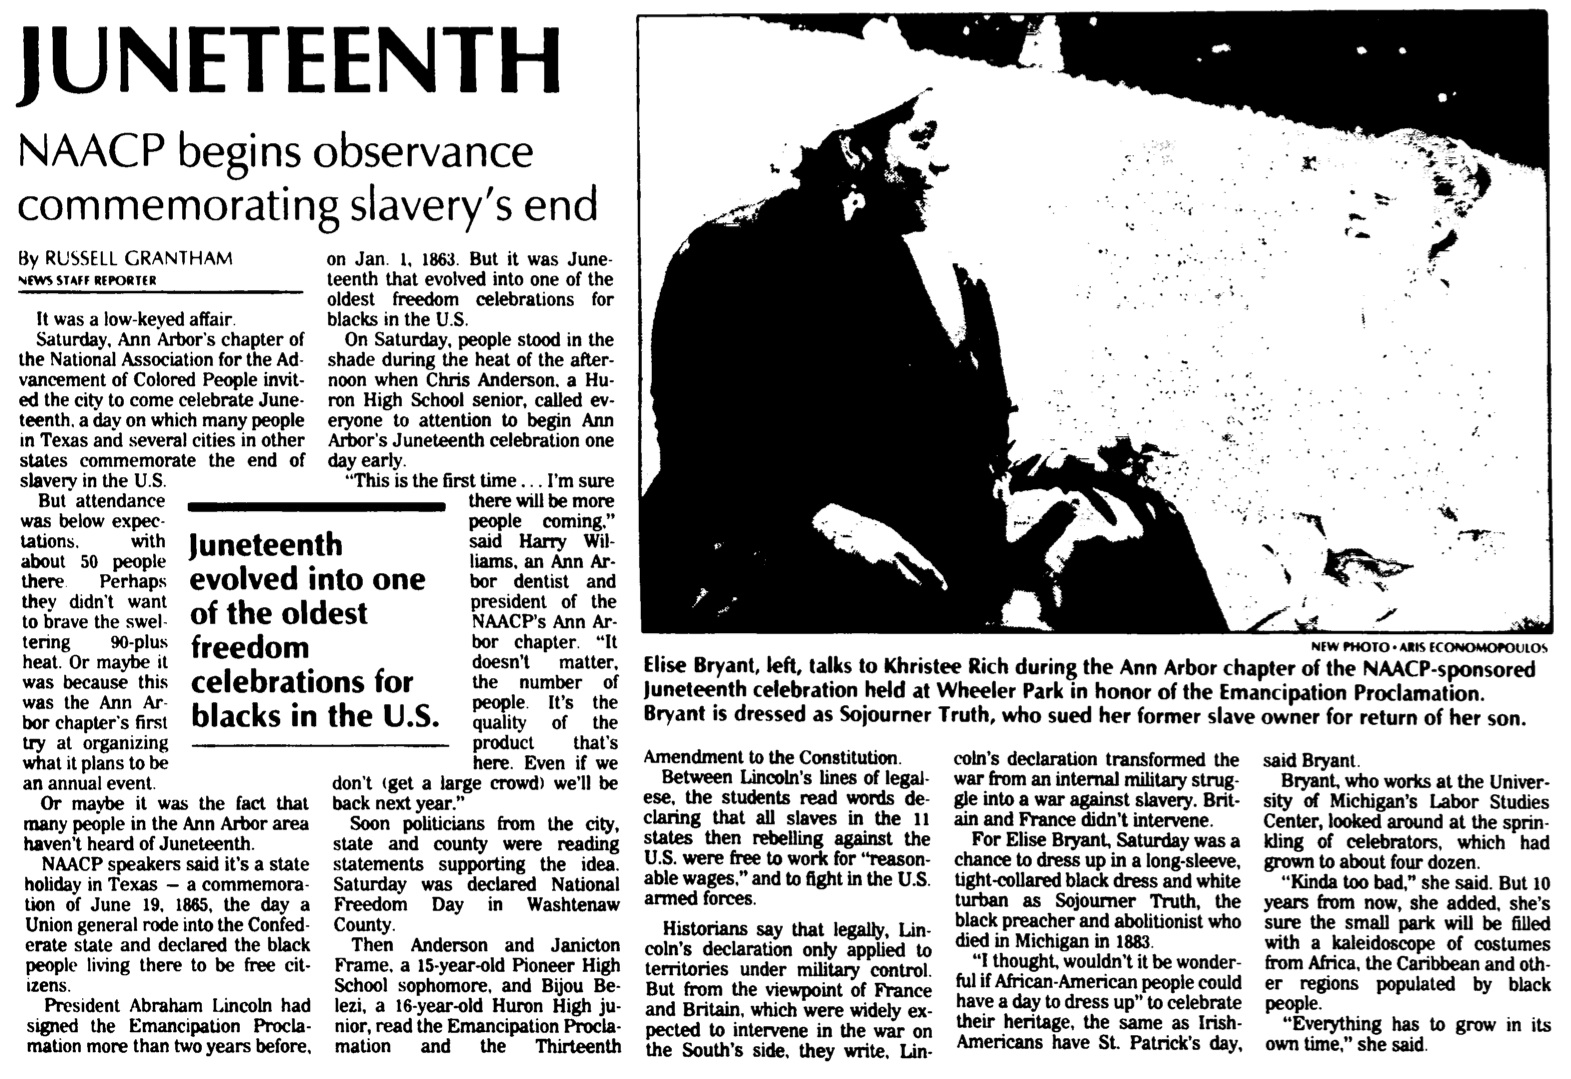 Juneteenth: NAACP Begins Observance Celebrating Slavery's End image